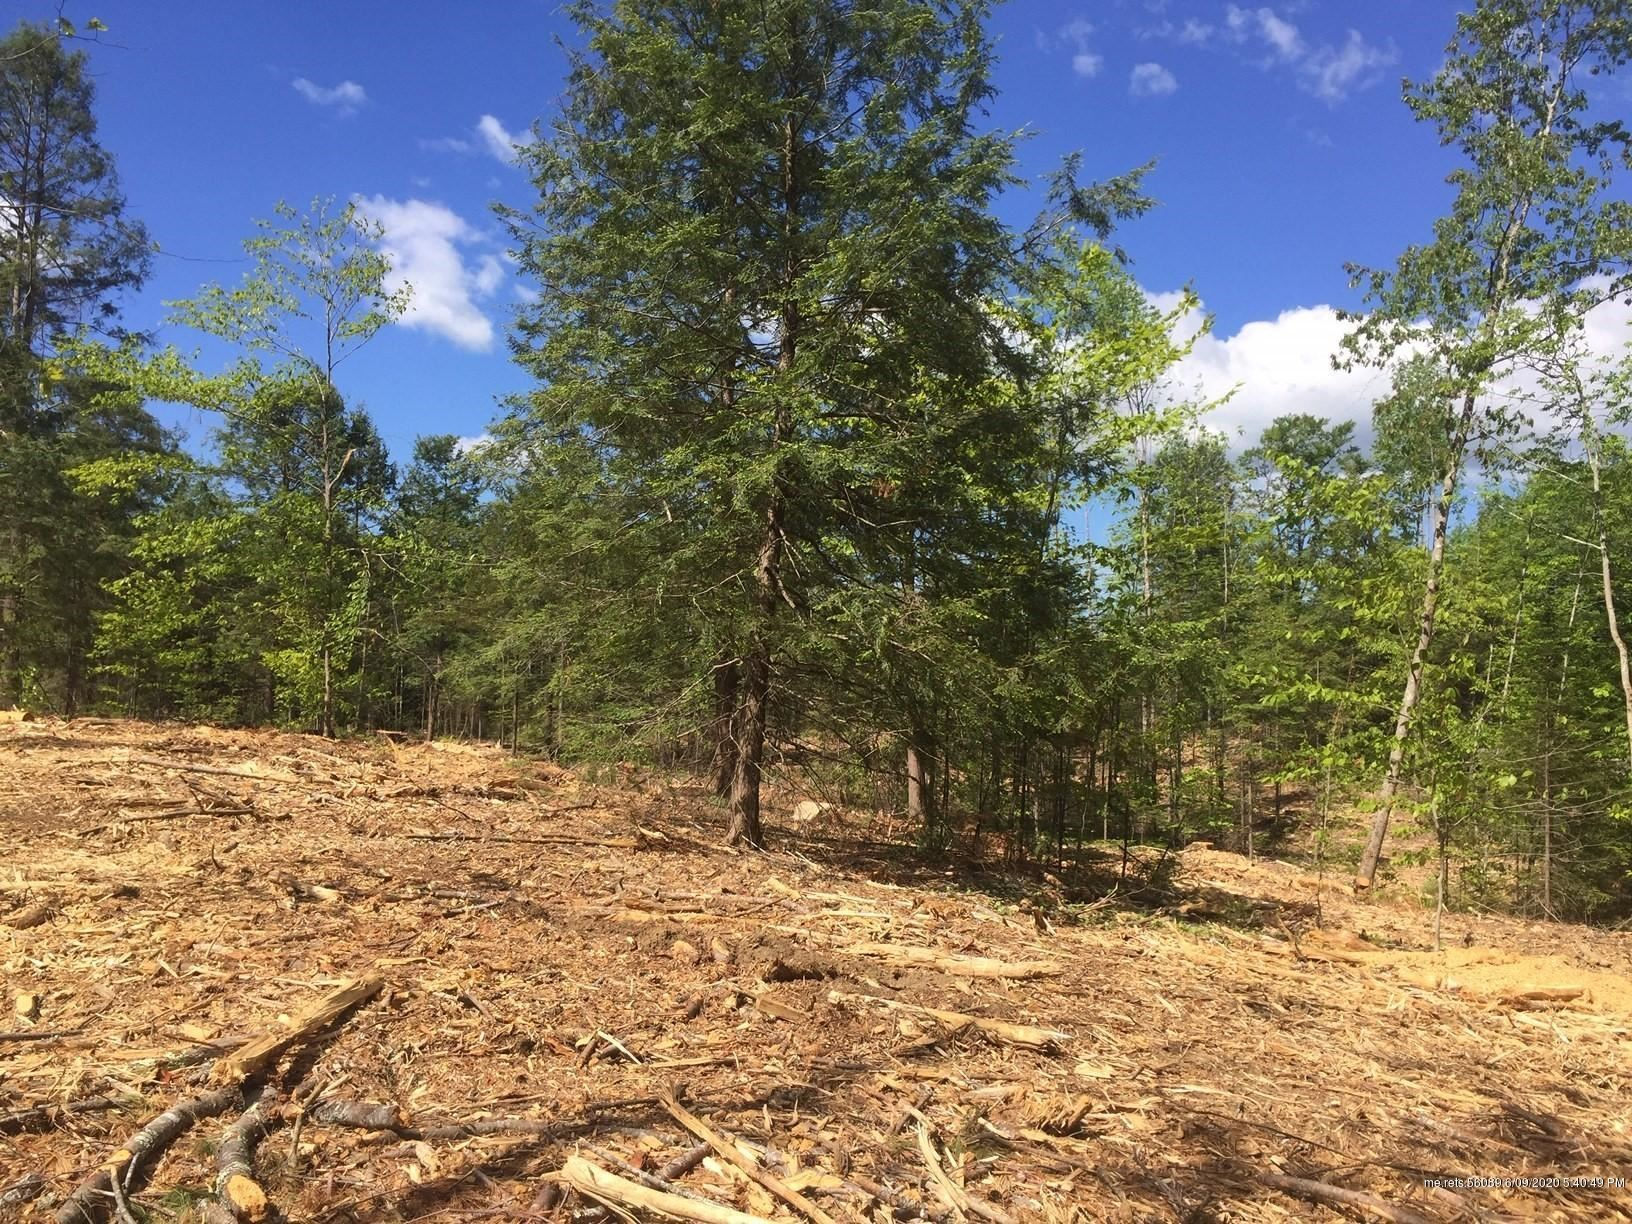 Photo of Lot 18 Gardiner Road, Whitefield, ME 04353 (MLS # 1455587)